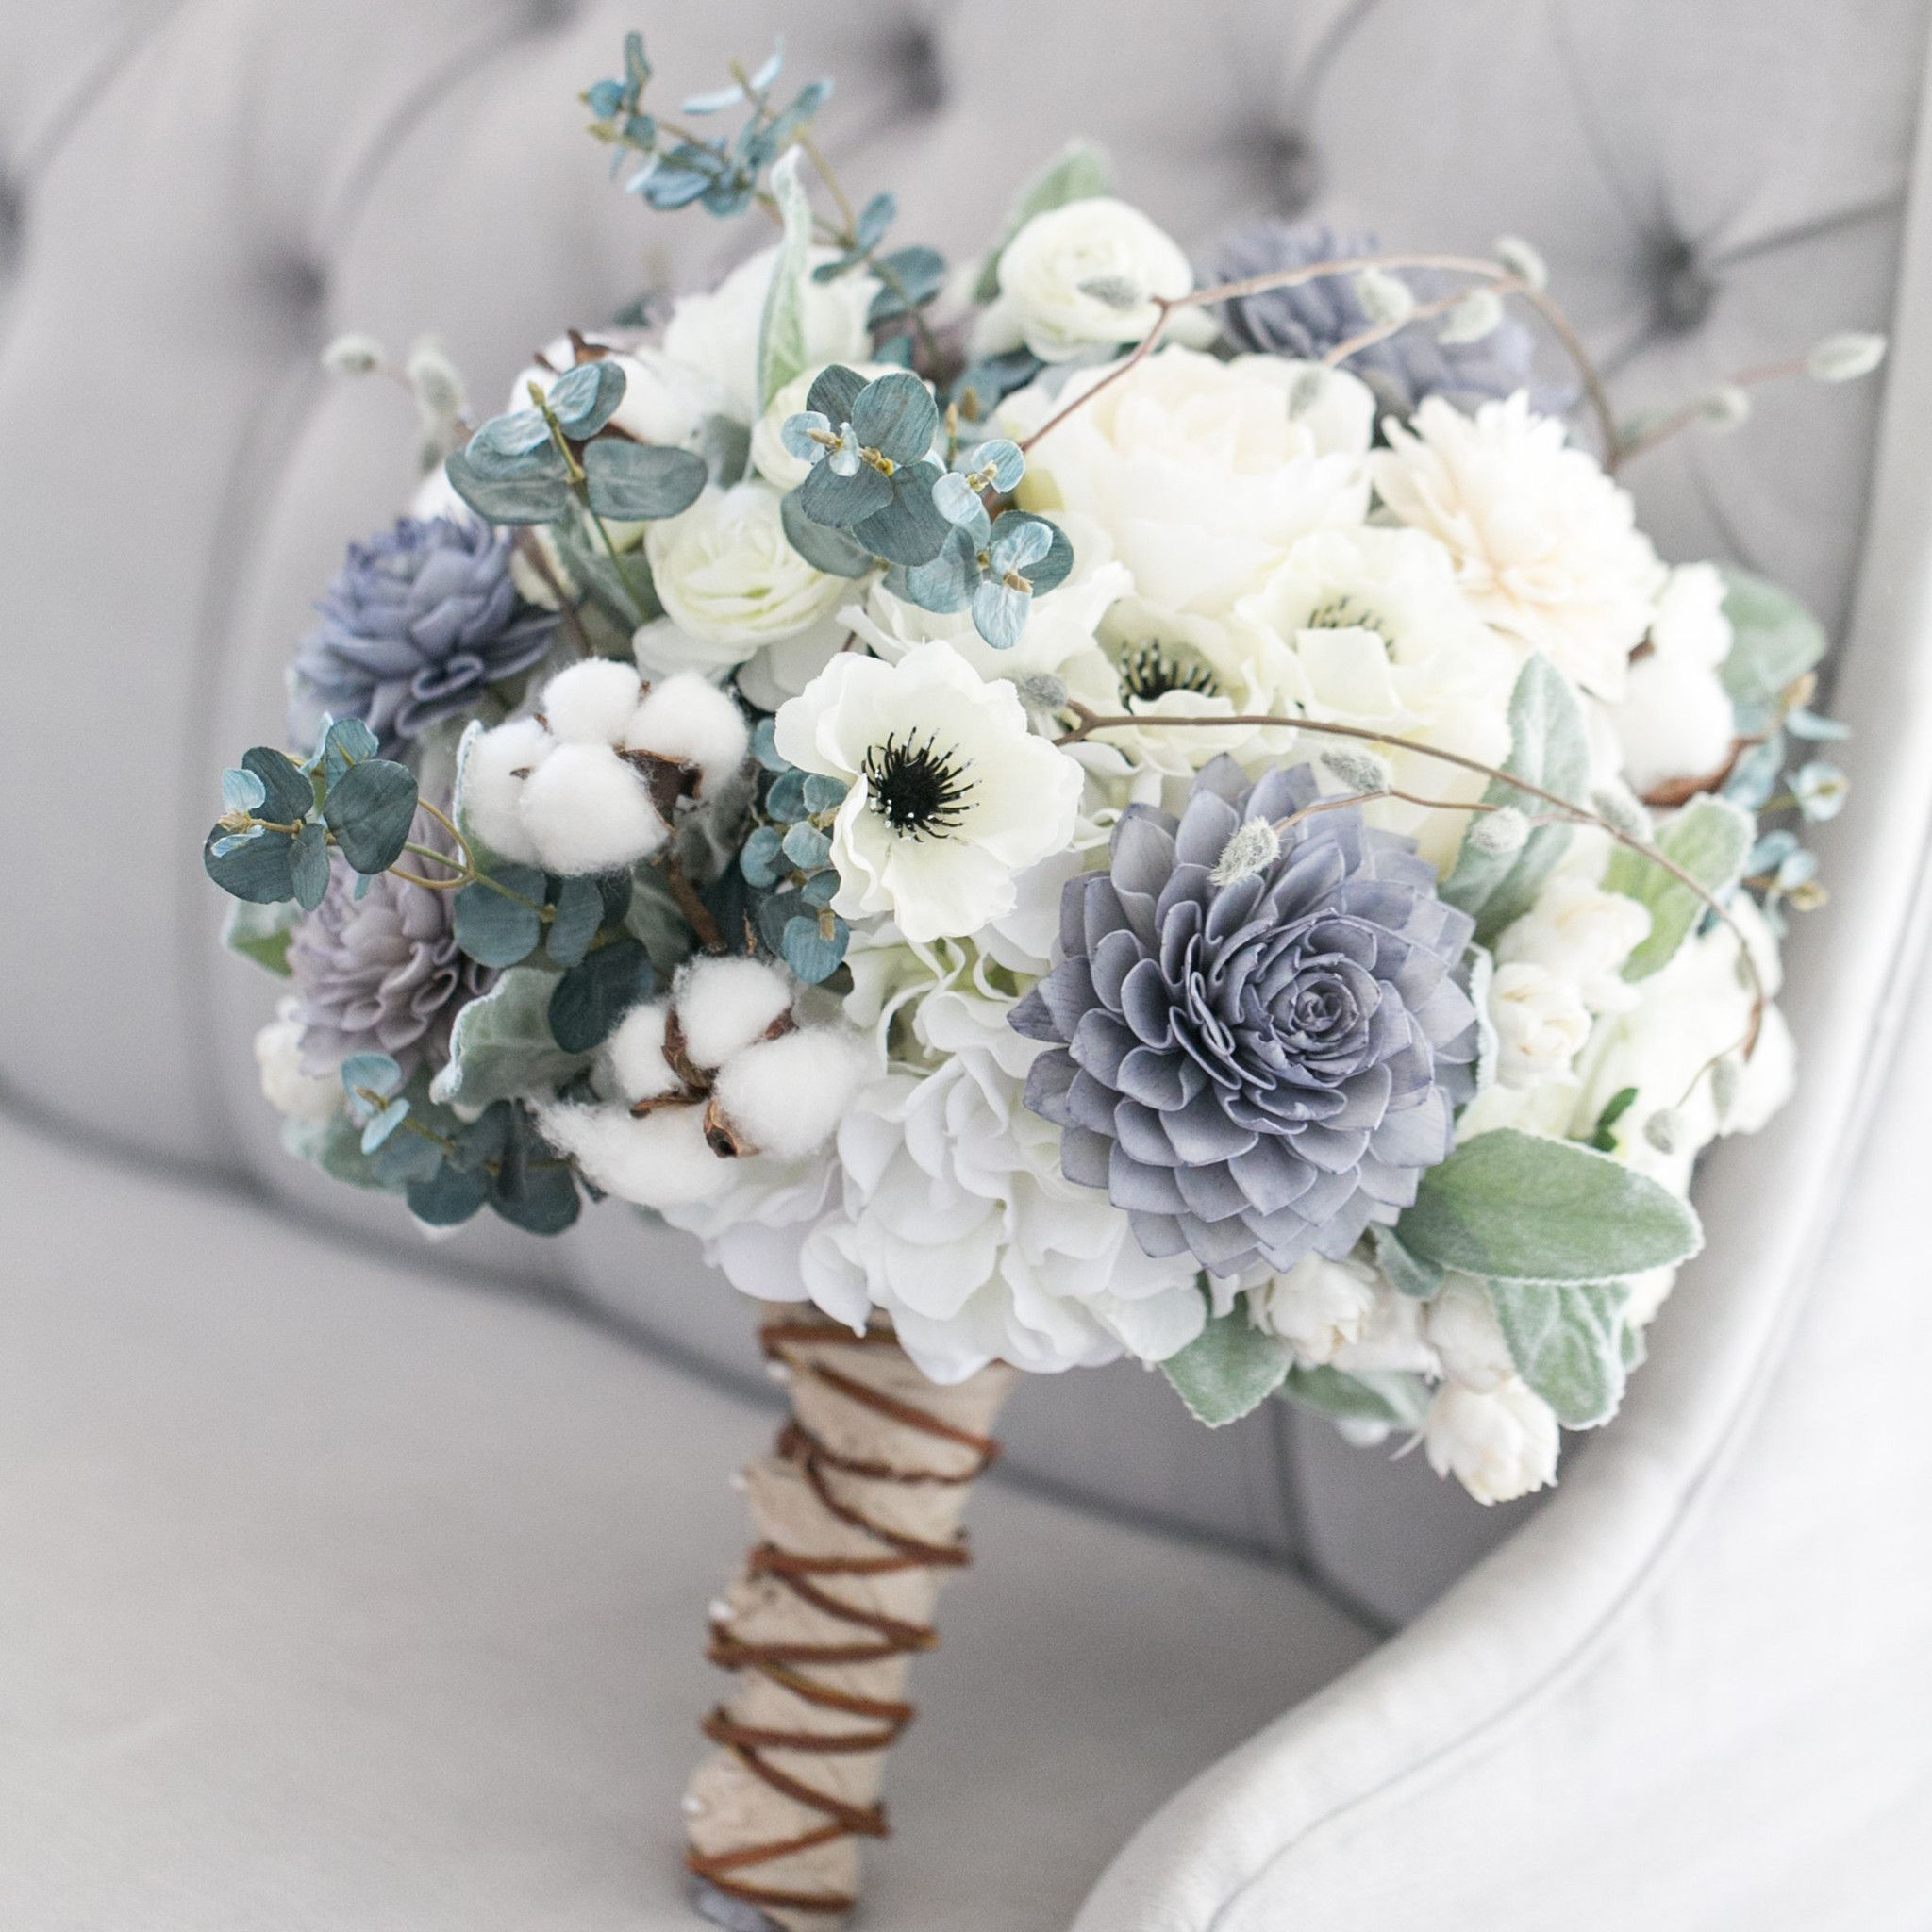 Rustic Romance Wedding Bouquet Wooden Flowers Silk And Navy